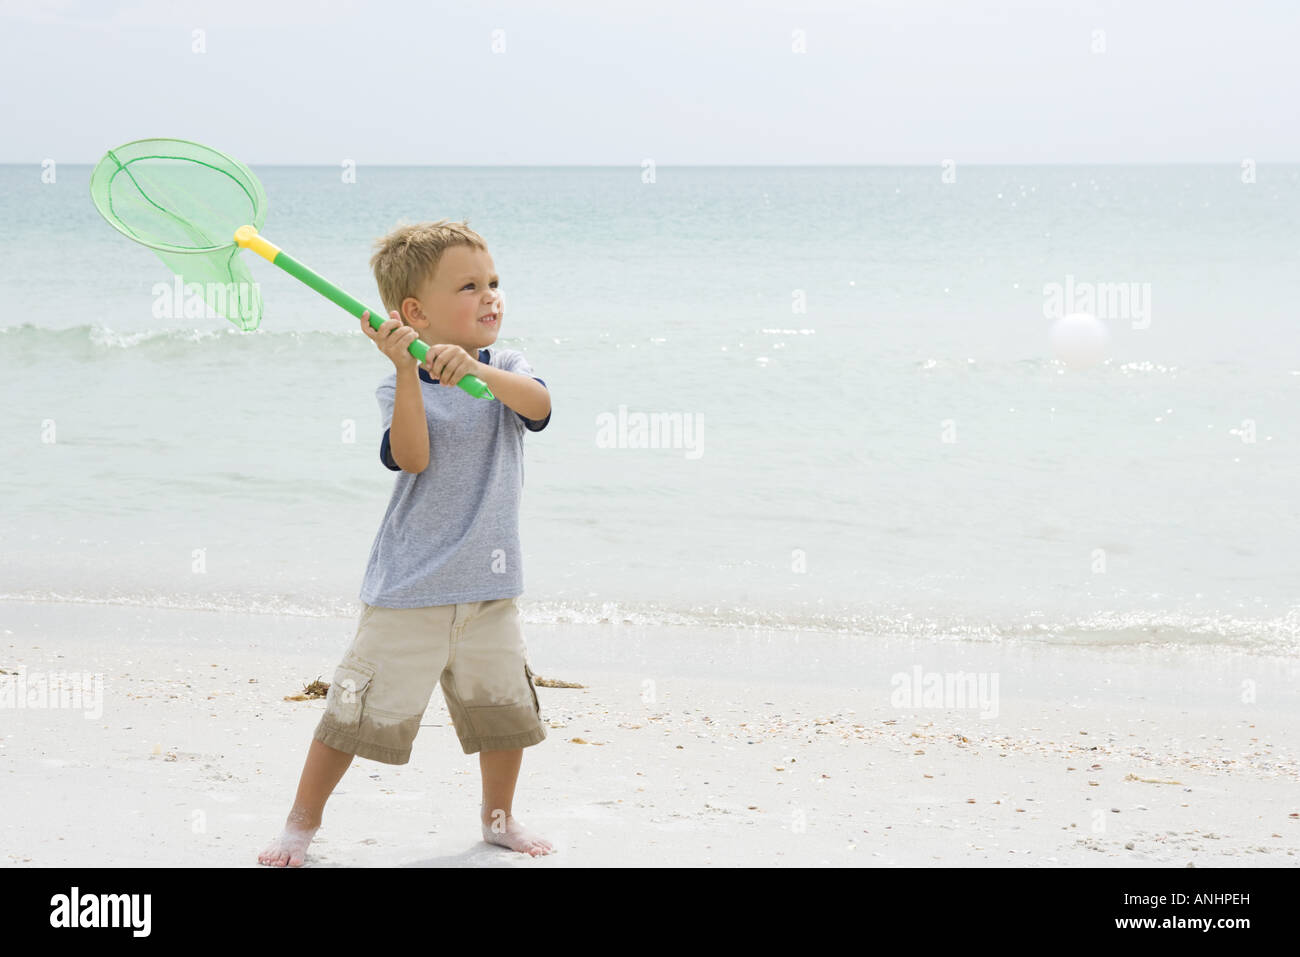 Young boy at the beach, holding up net to catch ball - Stock Image